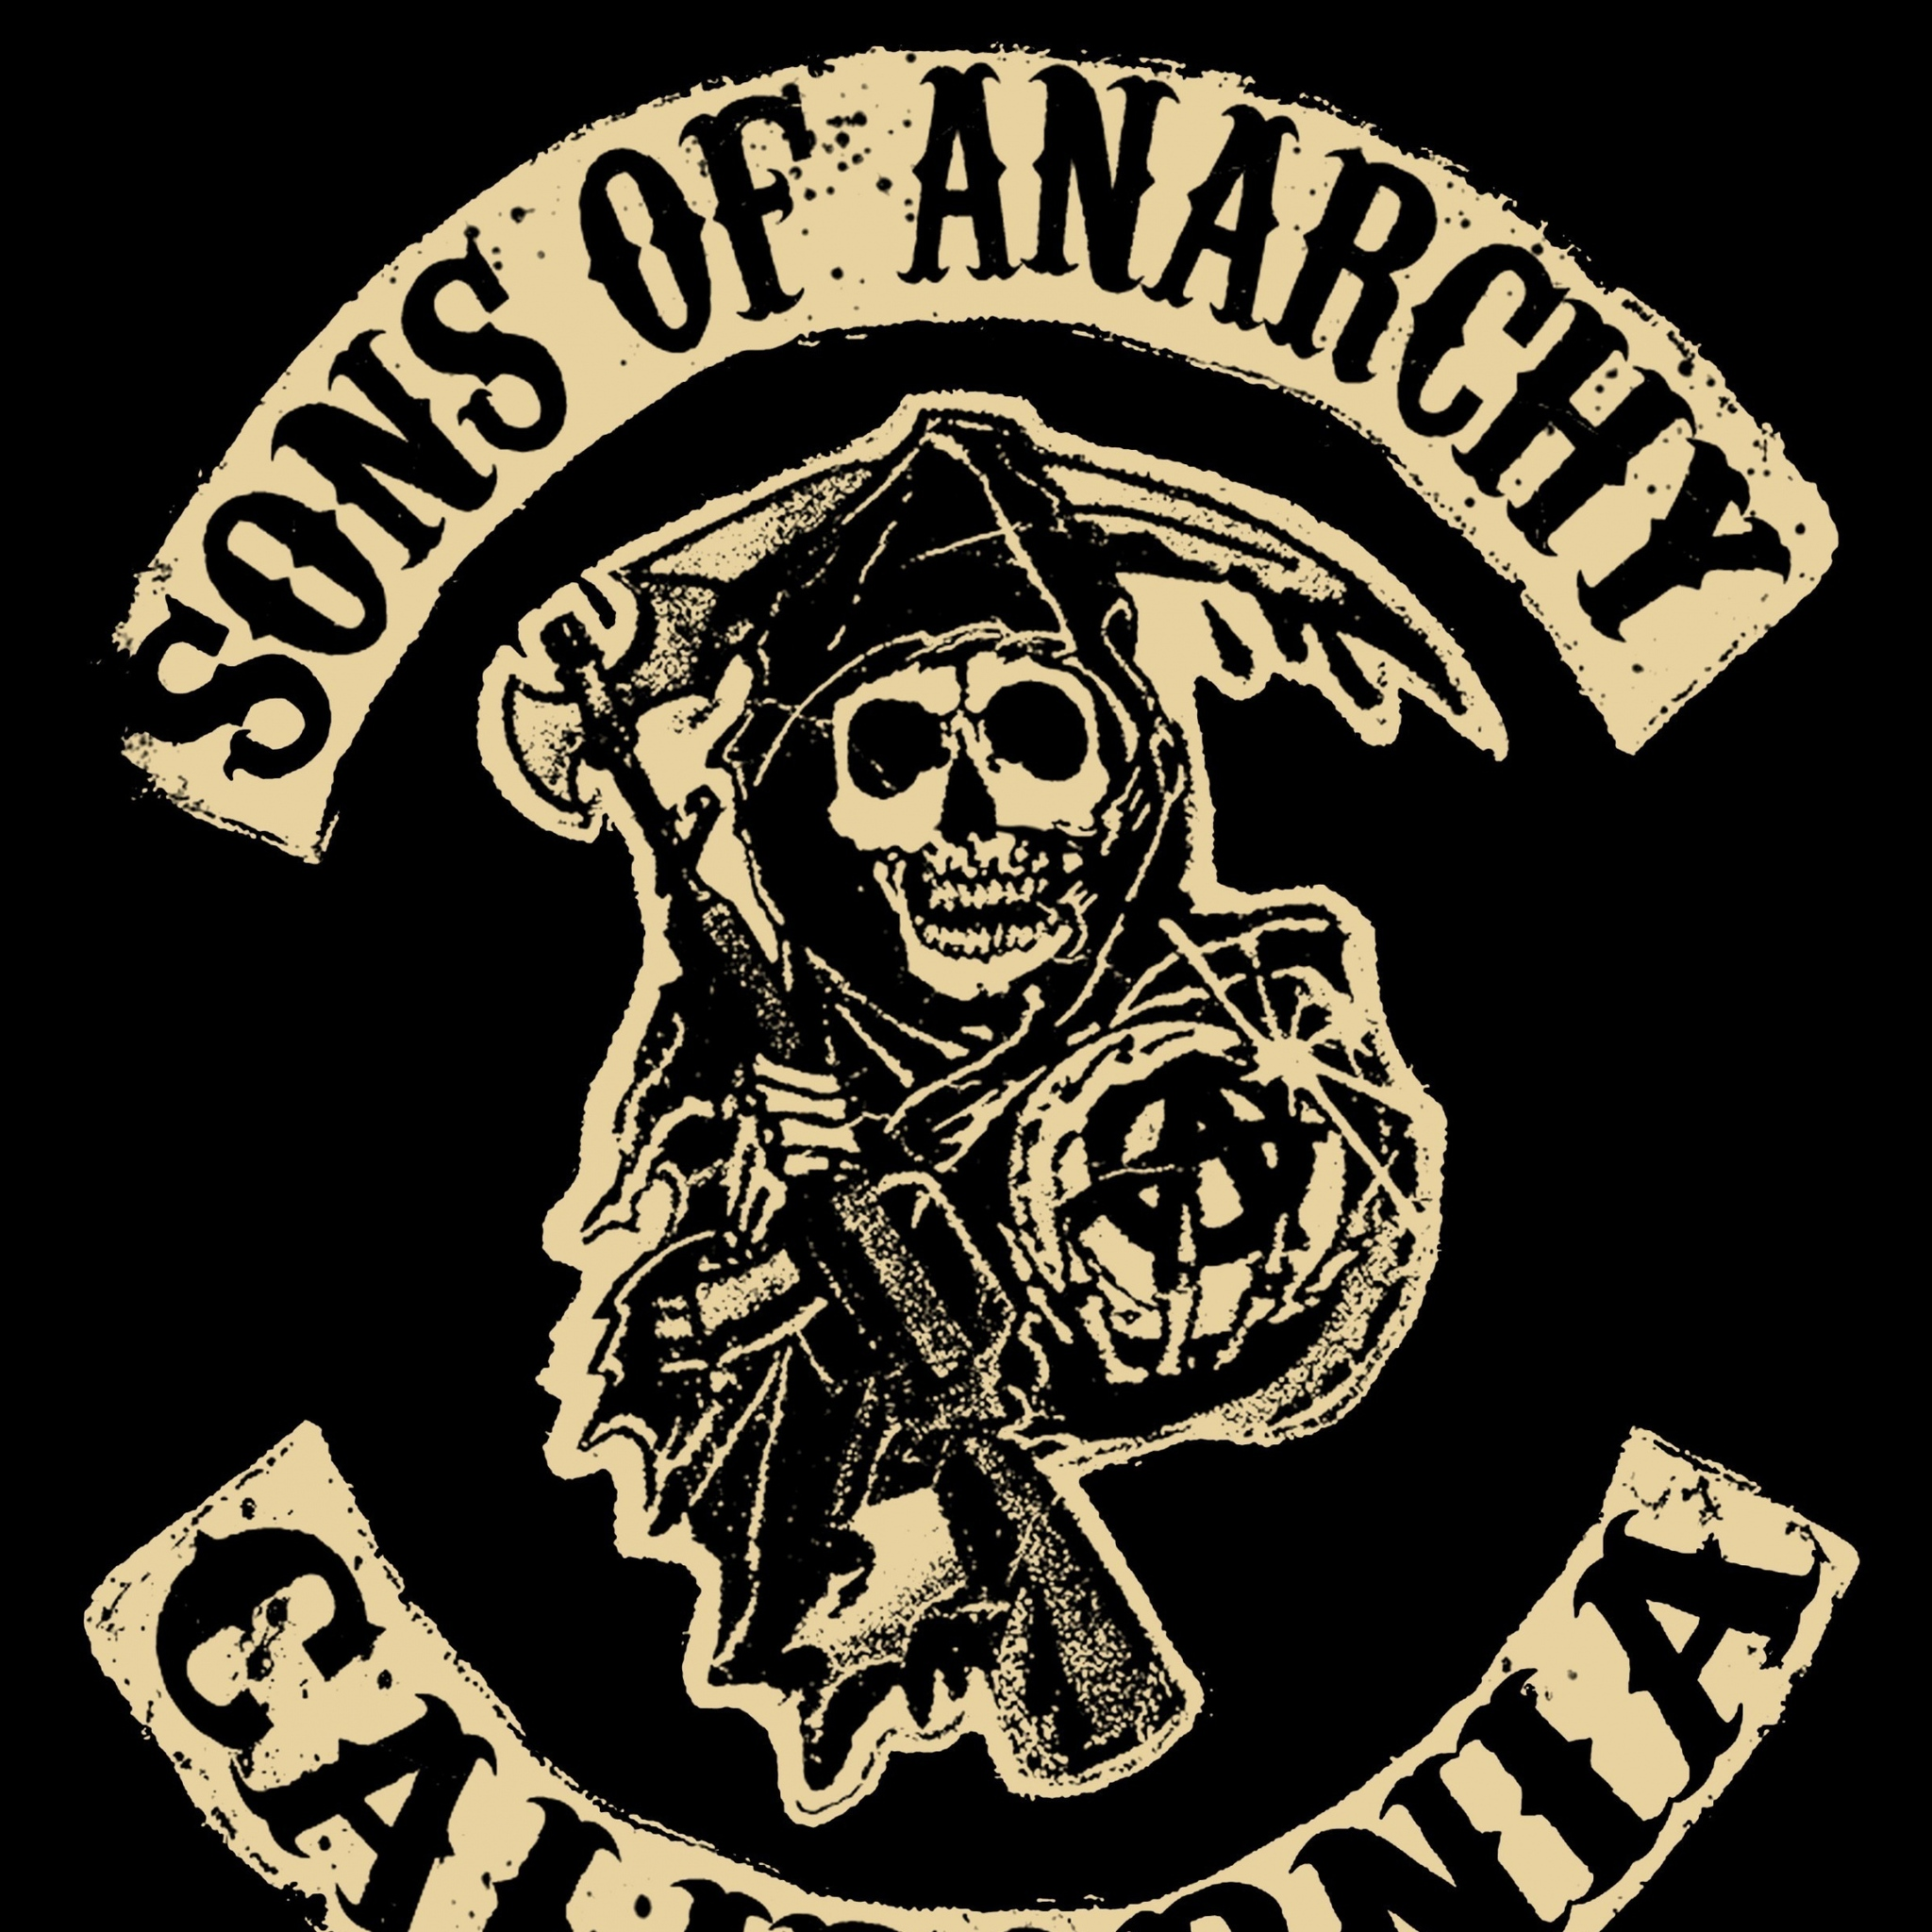 2048x2048 Sons Of Anarchy Ipad Air Hd 4k Wallpapers Images